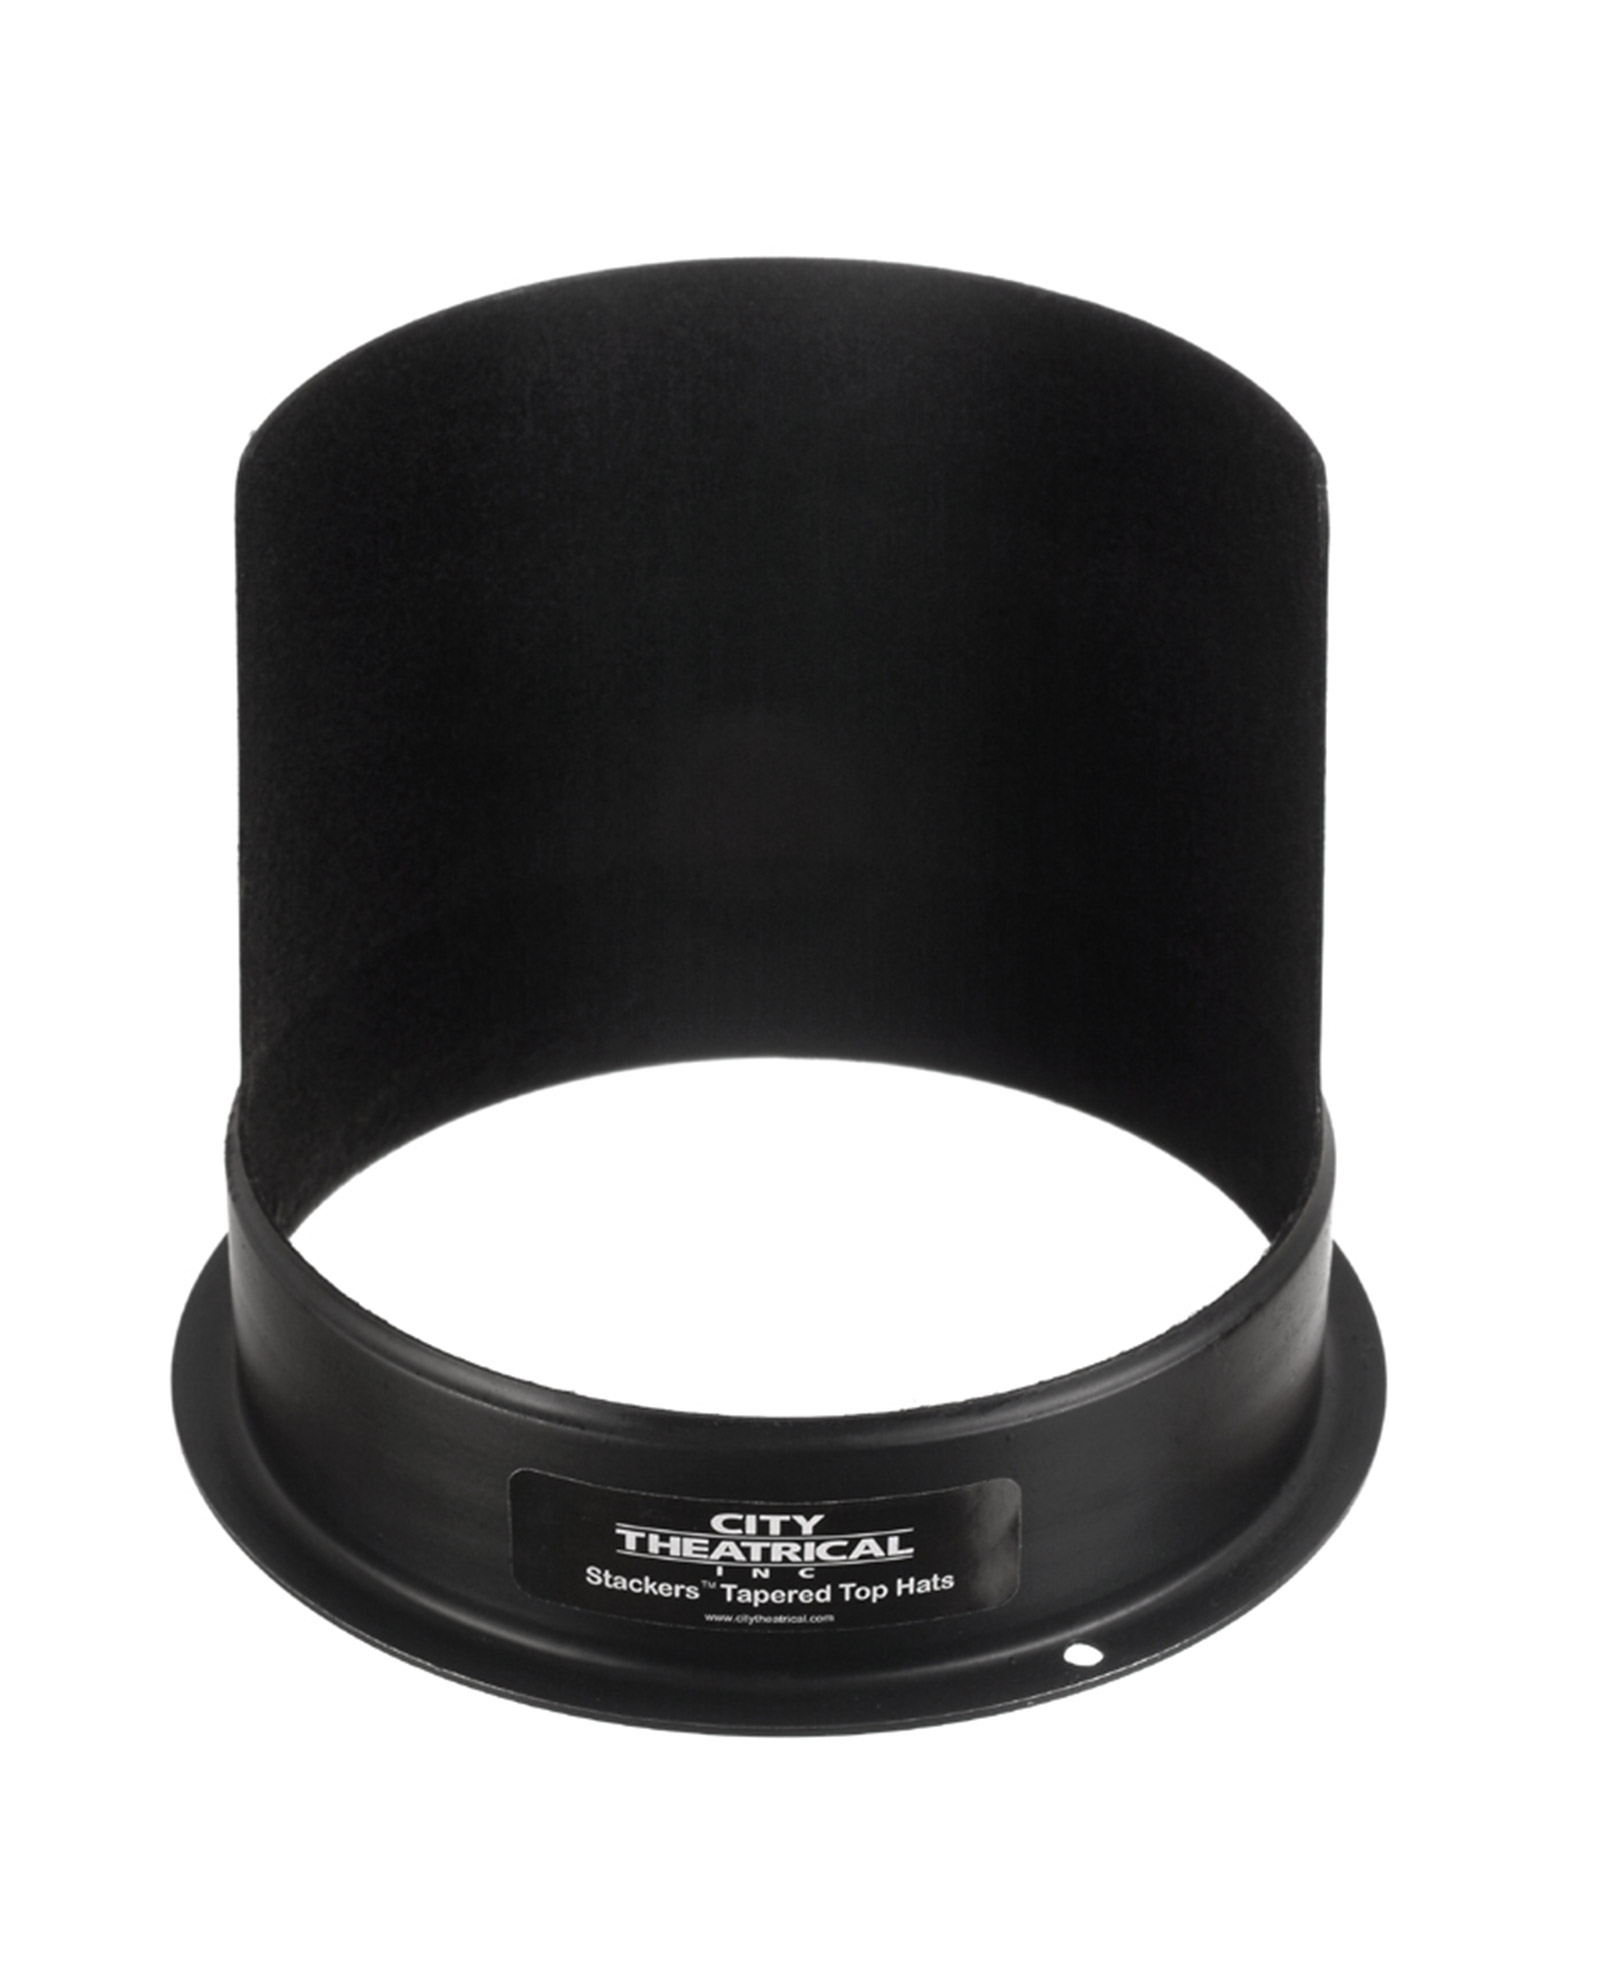 Theatrixx Stackers Tapered Half Top Hats